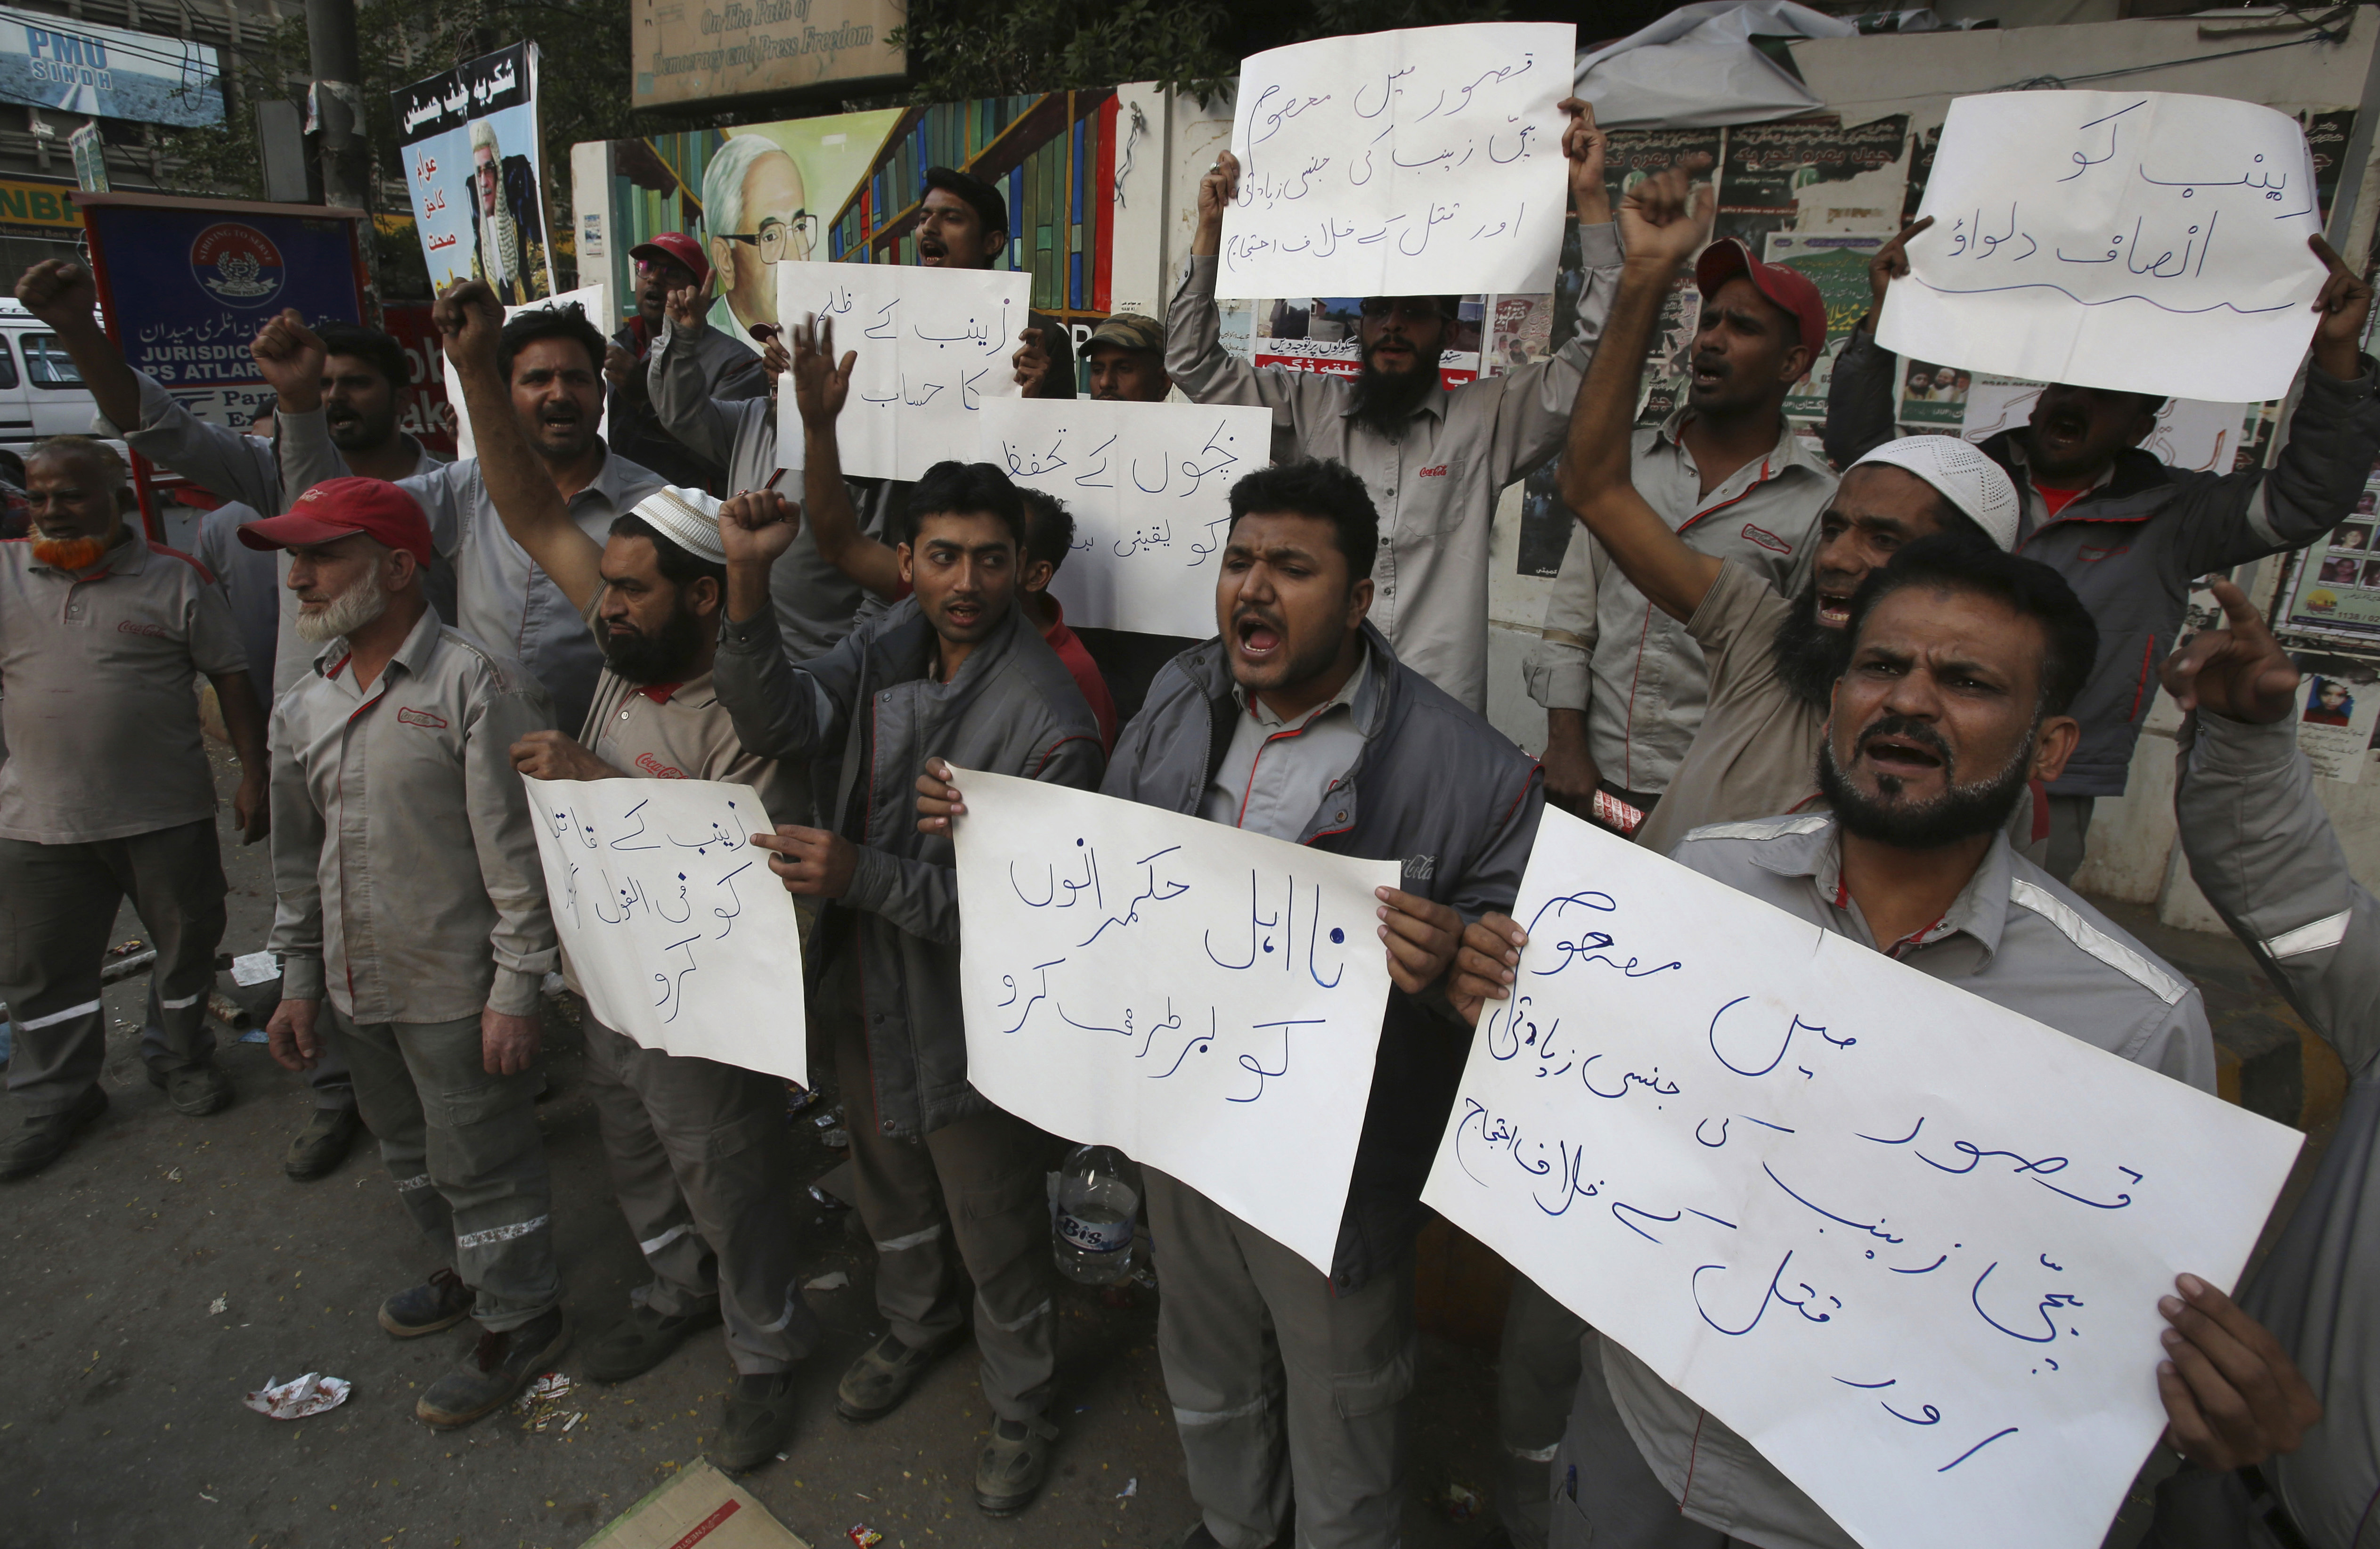 """Pakistani civil society activists protest against the rape and killing of a young girl, in Karachi, Pakistan, Jan. 10, 2018. Placard at bottom center reads"""" remove the incompetent rulers."""""""